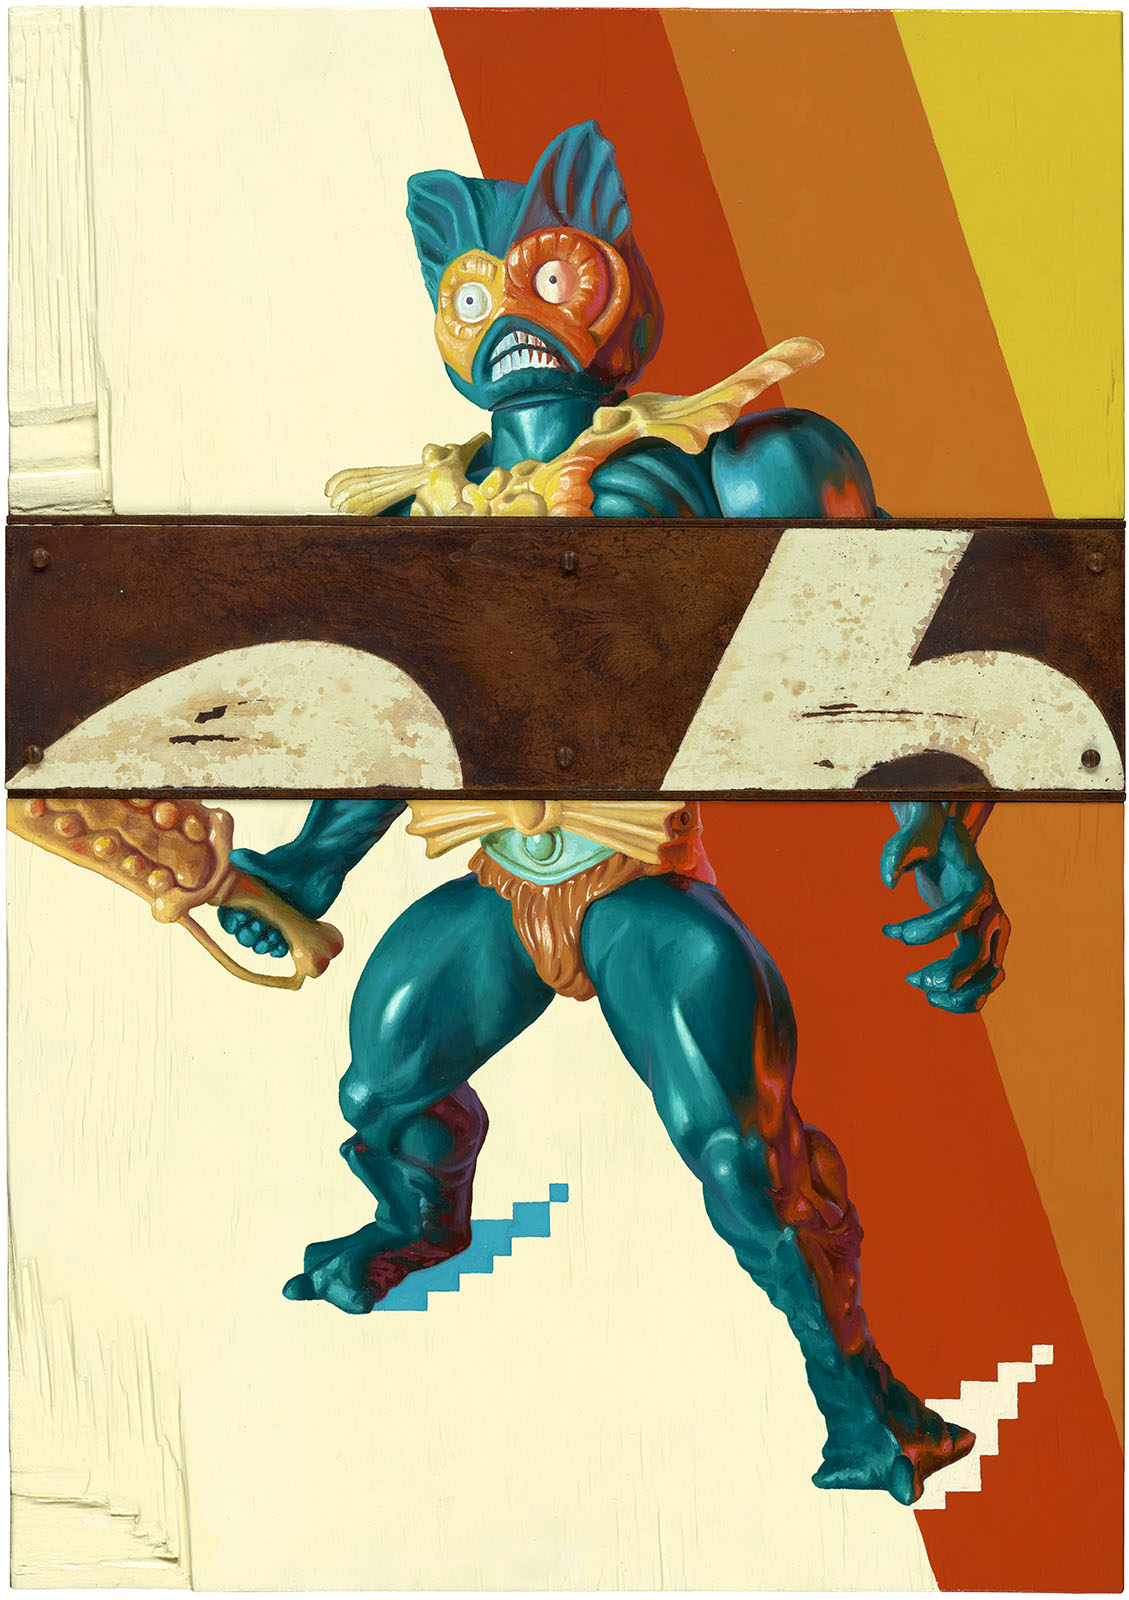 Oil painting of Mer-man from He-man and the Masters of the Universe (MOTU).